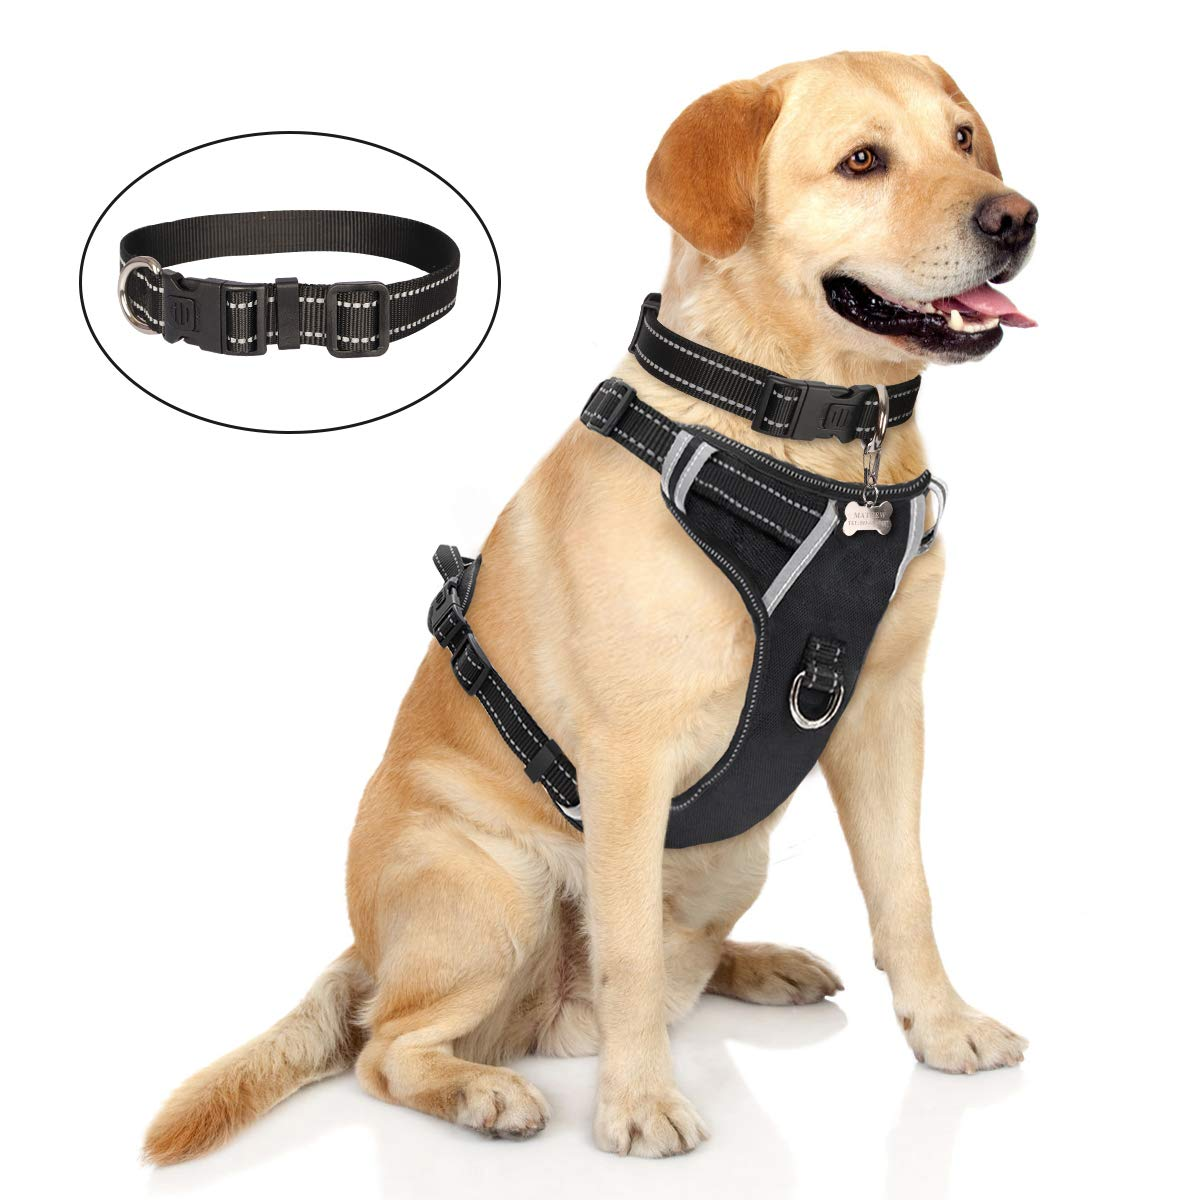 WINSEE No Pull Dog Harness with Dog Collar